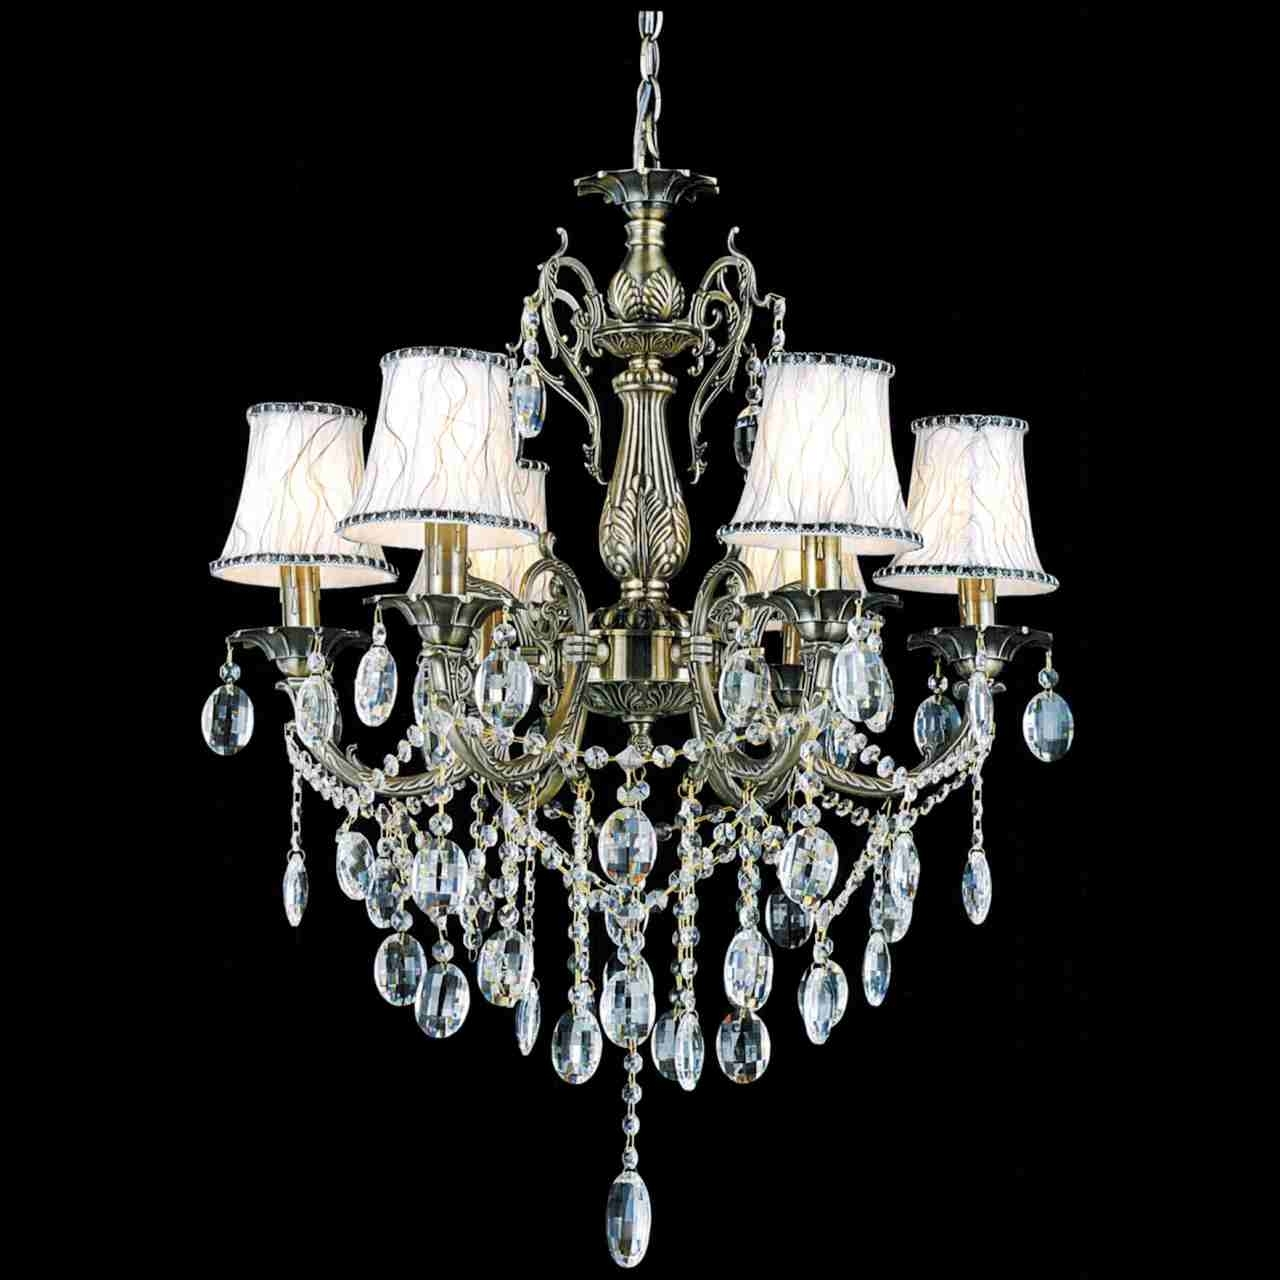 Trendy Chandeliers With Lamp Shades Intended For Brizzo Lighting Stores (View 6 of 15)